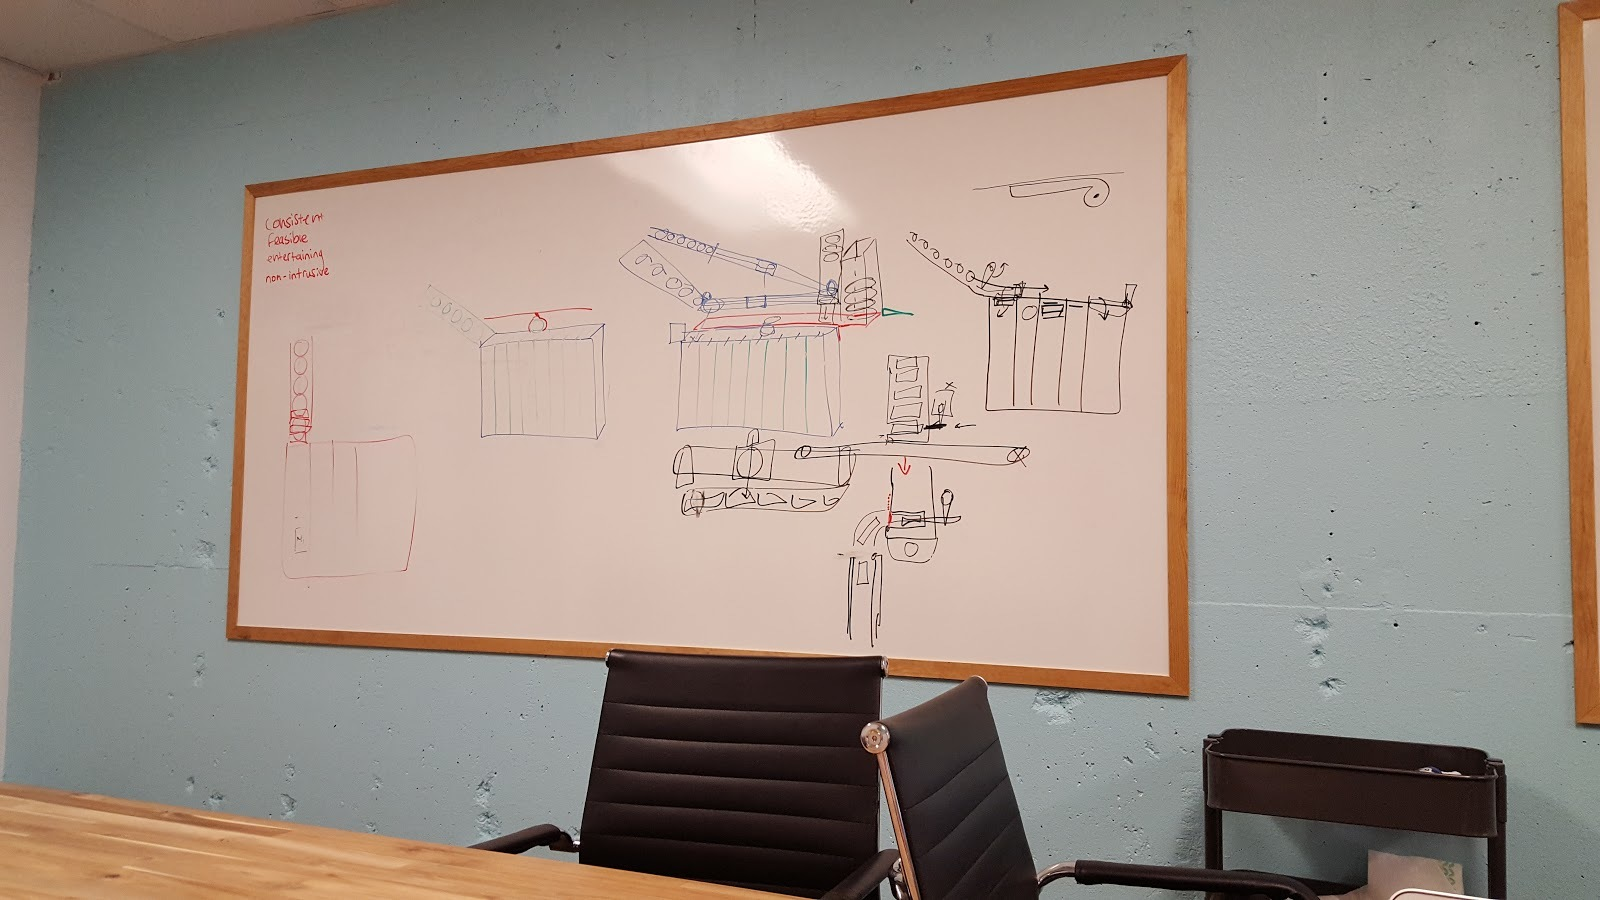 Planning the mechanism on Viget's whiteboard.